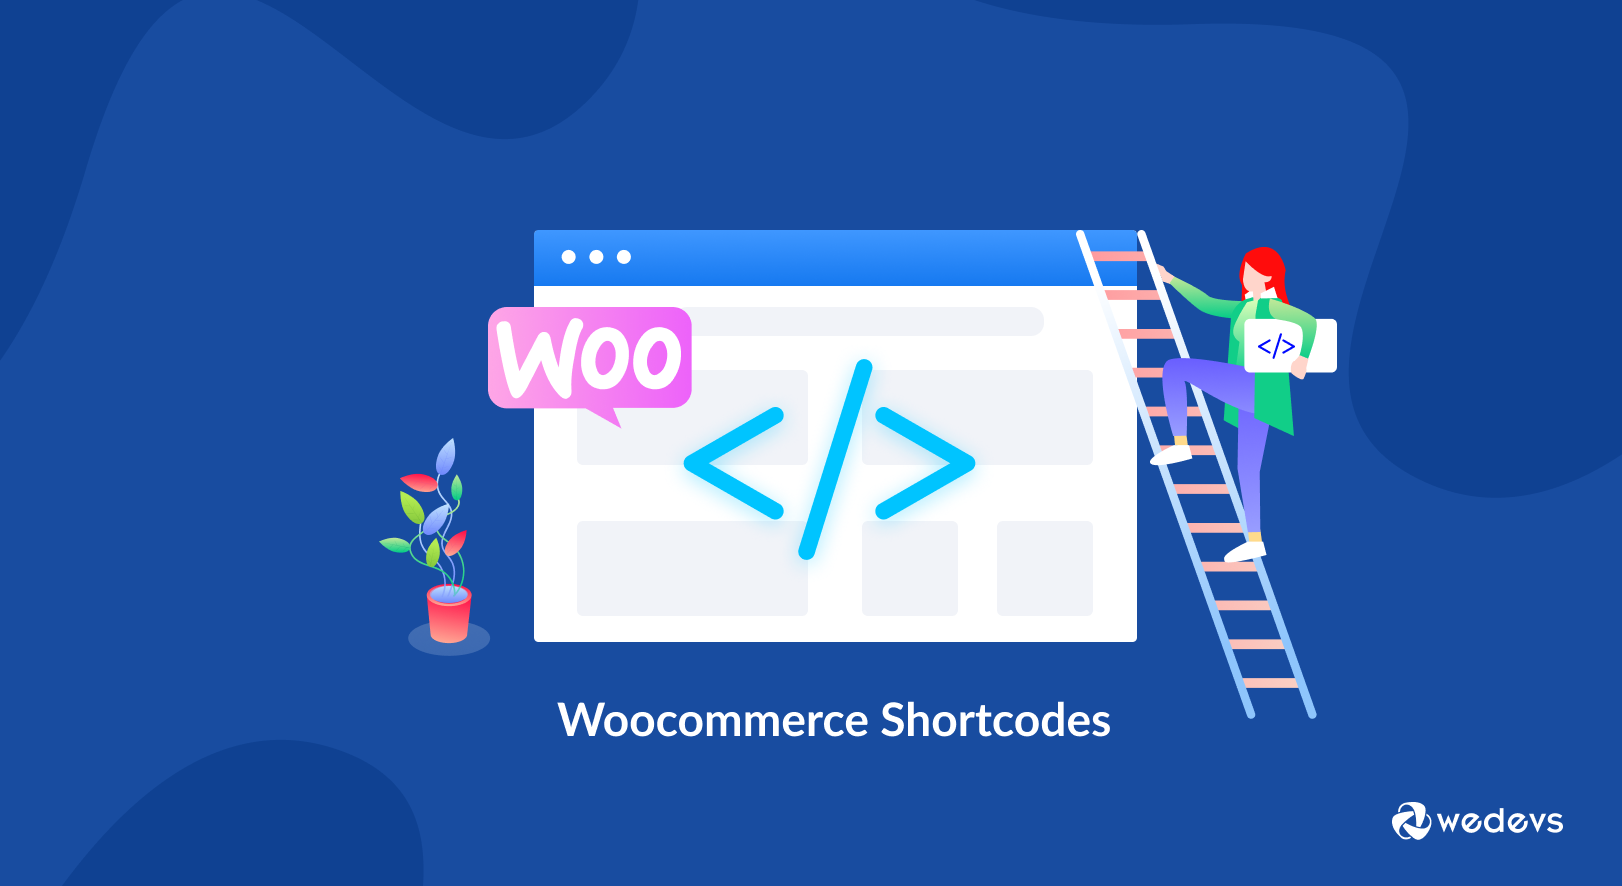 Essential WooCommerce Shortcodes to Customize Your Online Store on WordPress